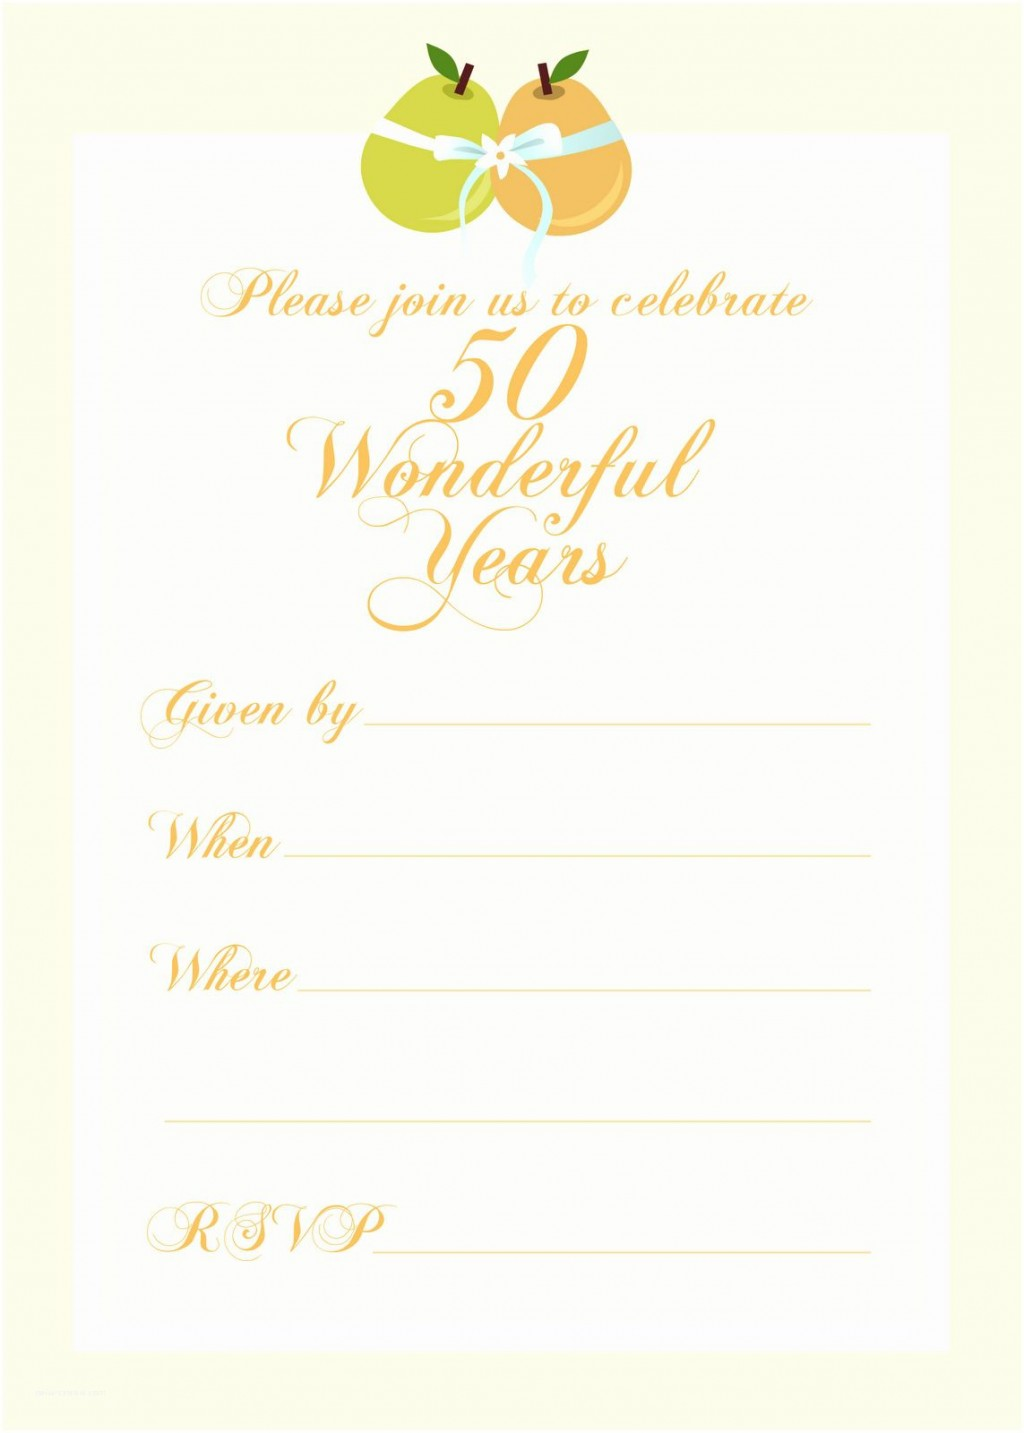 003 Astounding 50th Wedding Anniversary Invitation Template Inspiration  Templates Golden Uk Free DownloadLarge